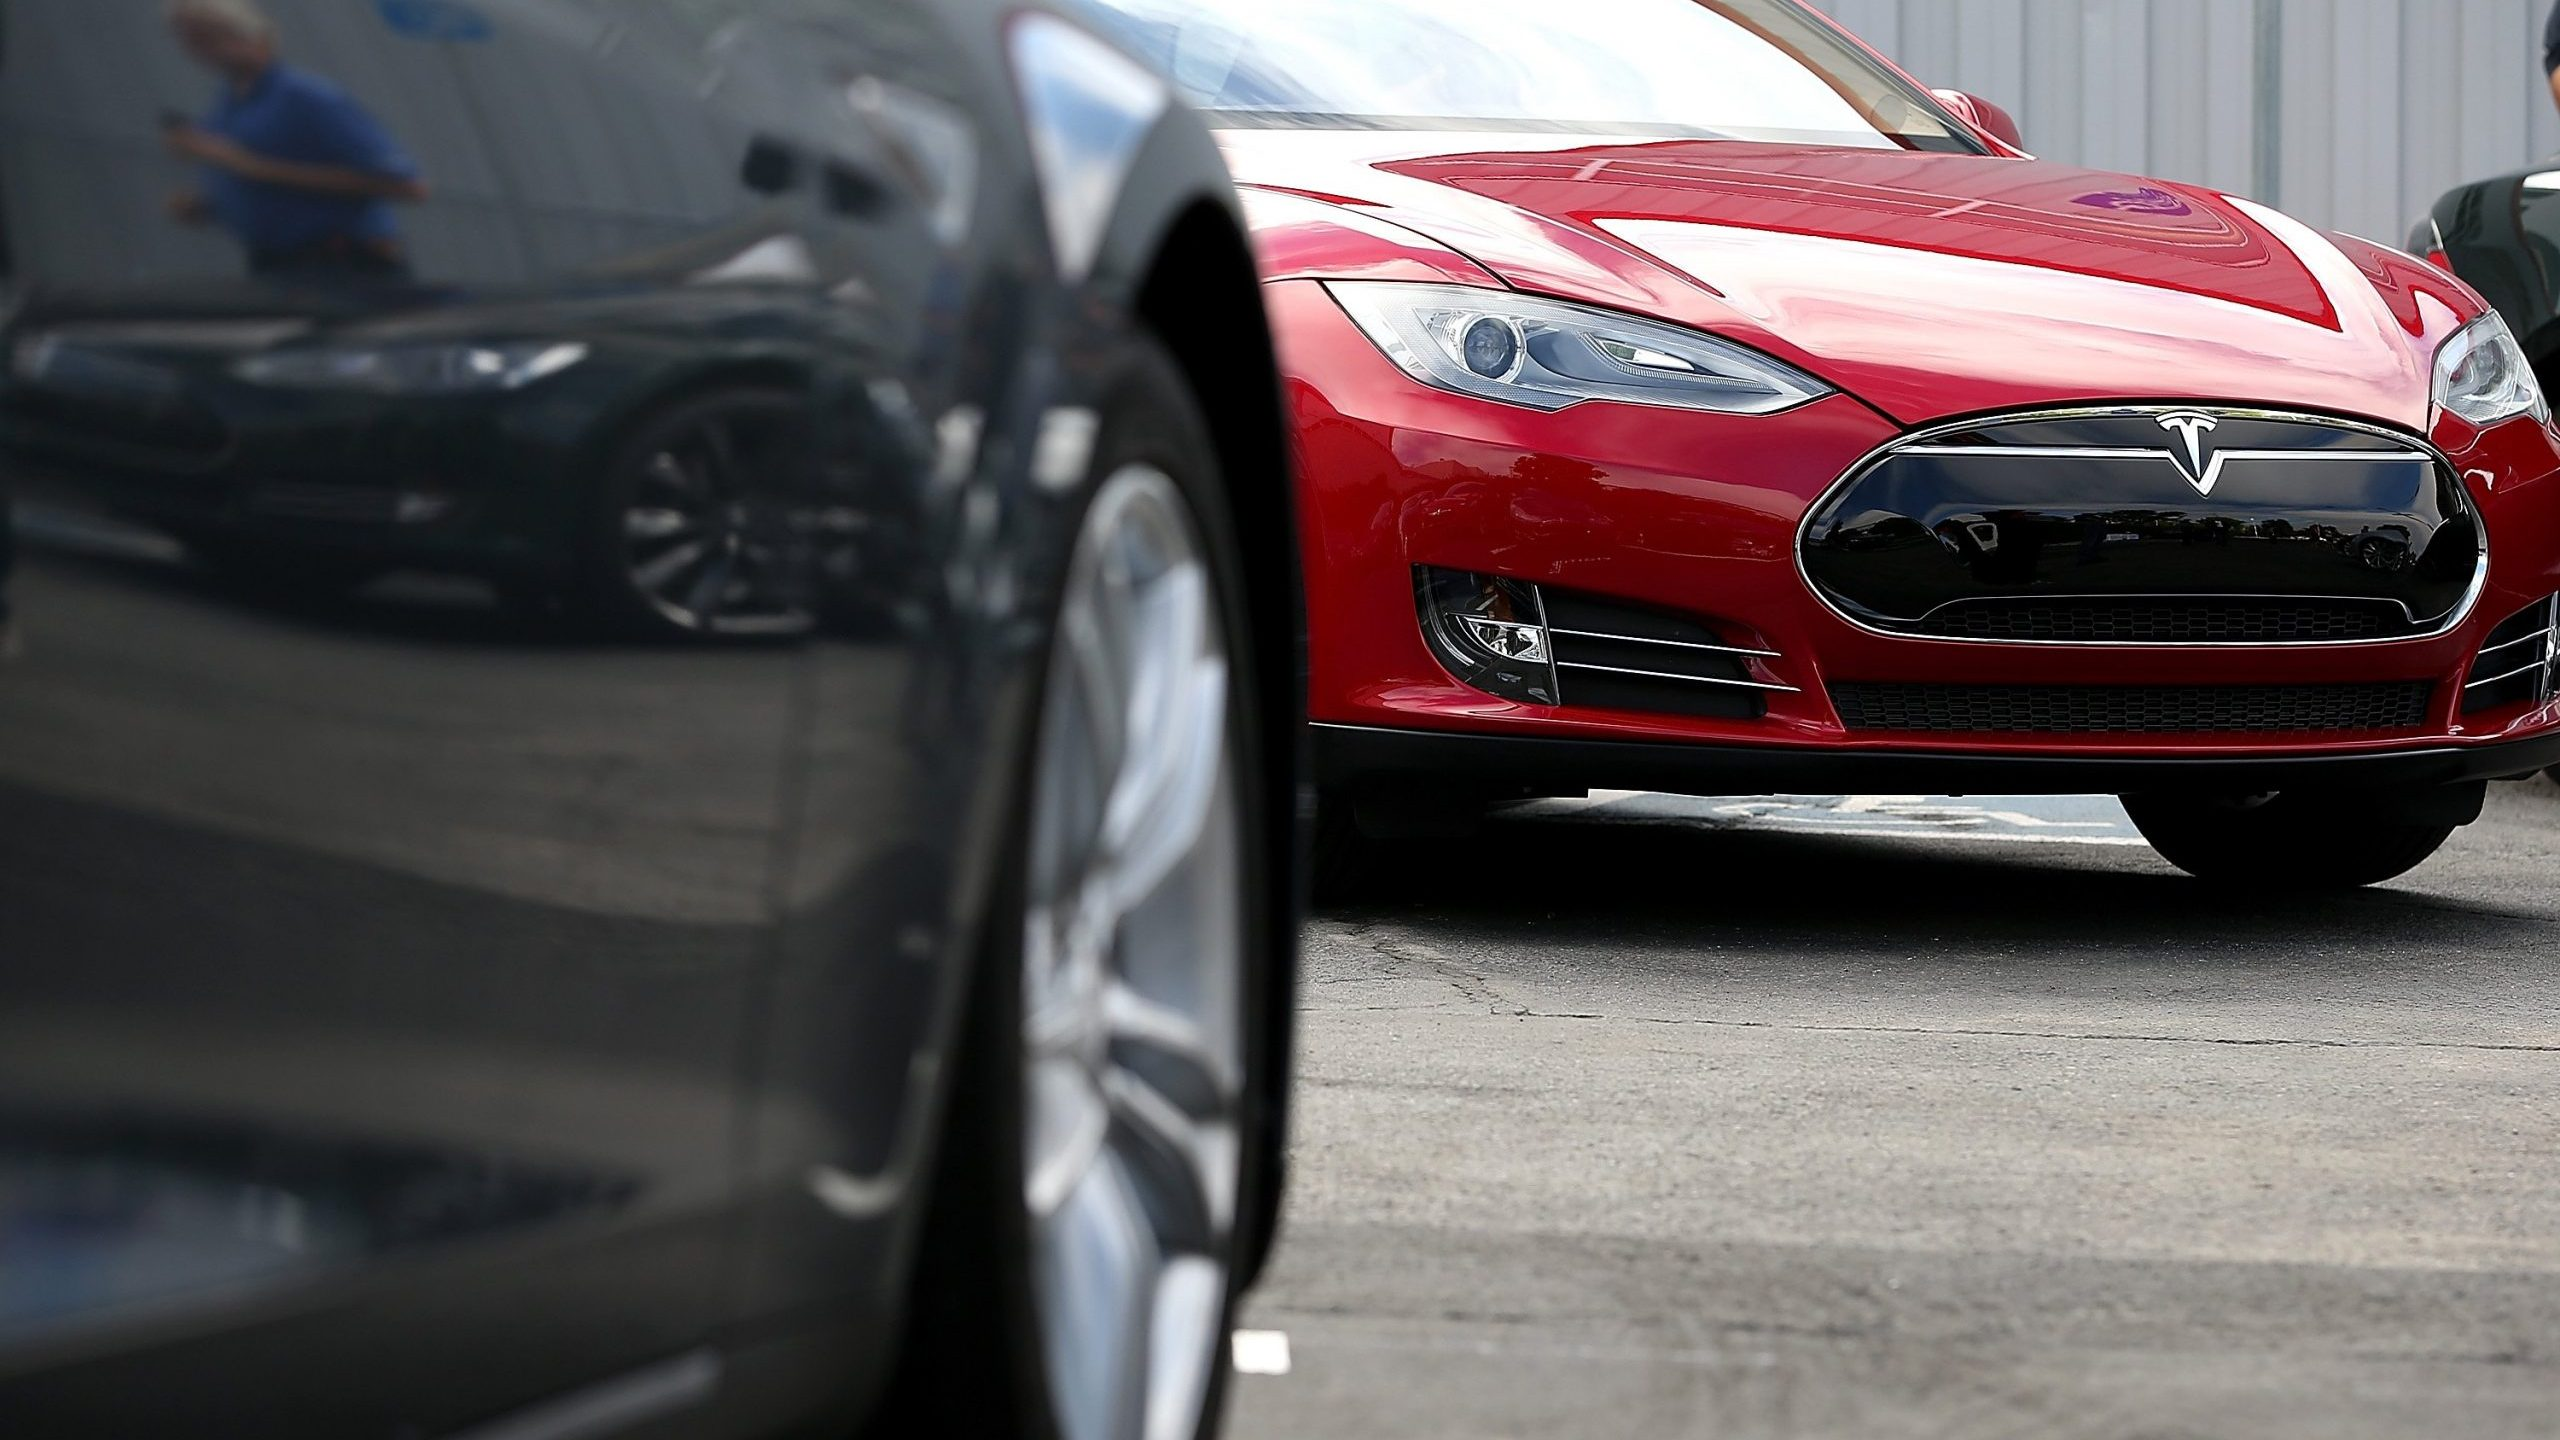 Tesla Model S sedans are seen parked in front of the Tesla Factory on Aug. 16, 2013 in Fremont. (Credit: Justin Sullivan/Getty Images)